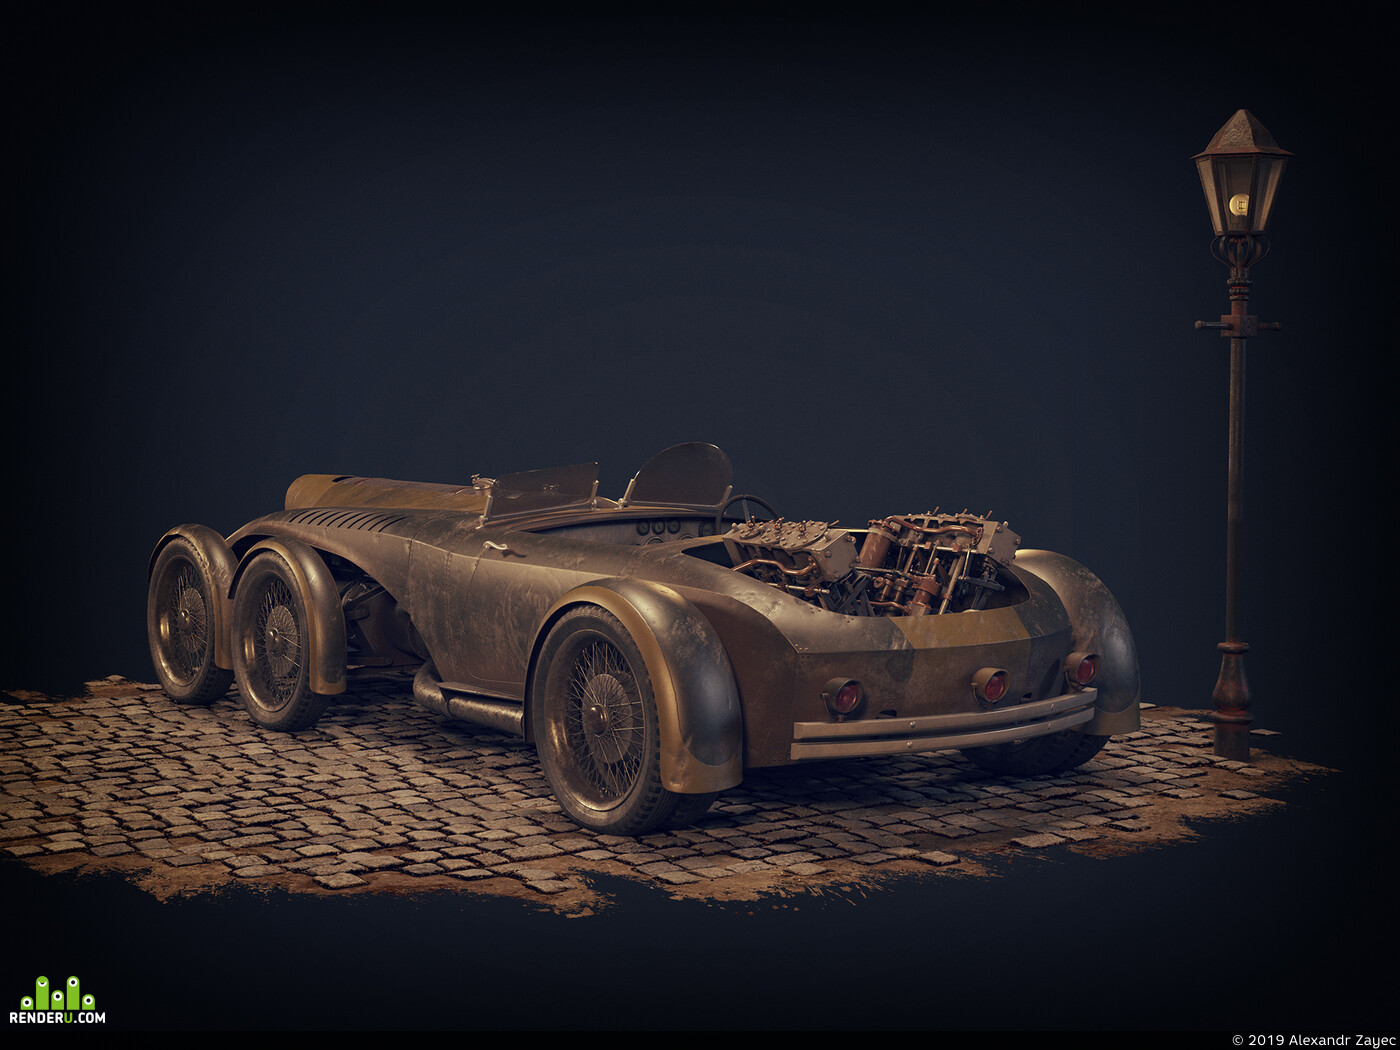 cars, Steam, 3d, retro futuristic, steam engine